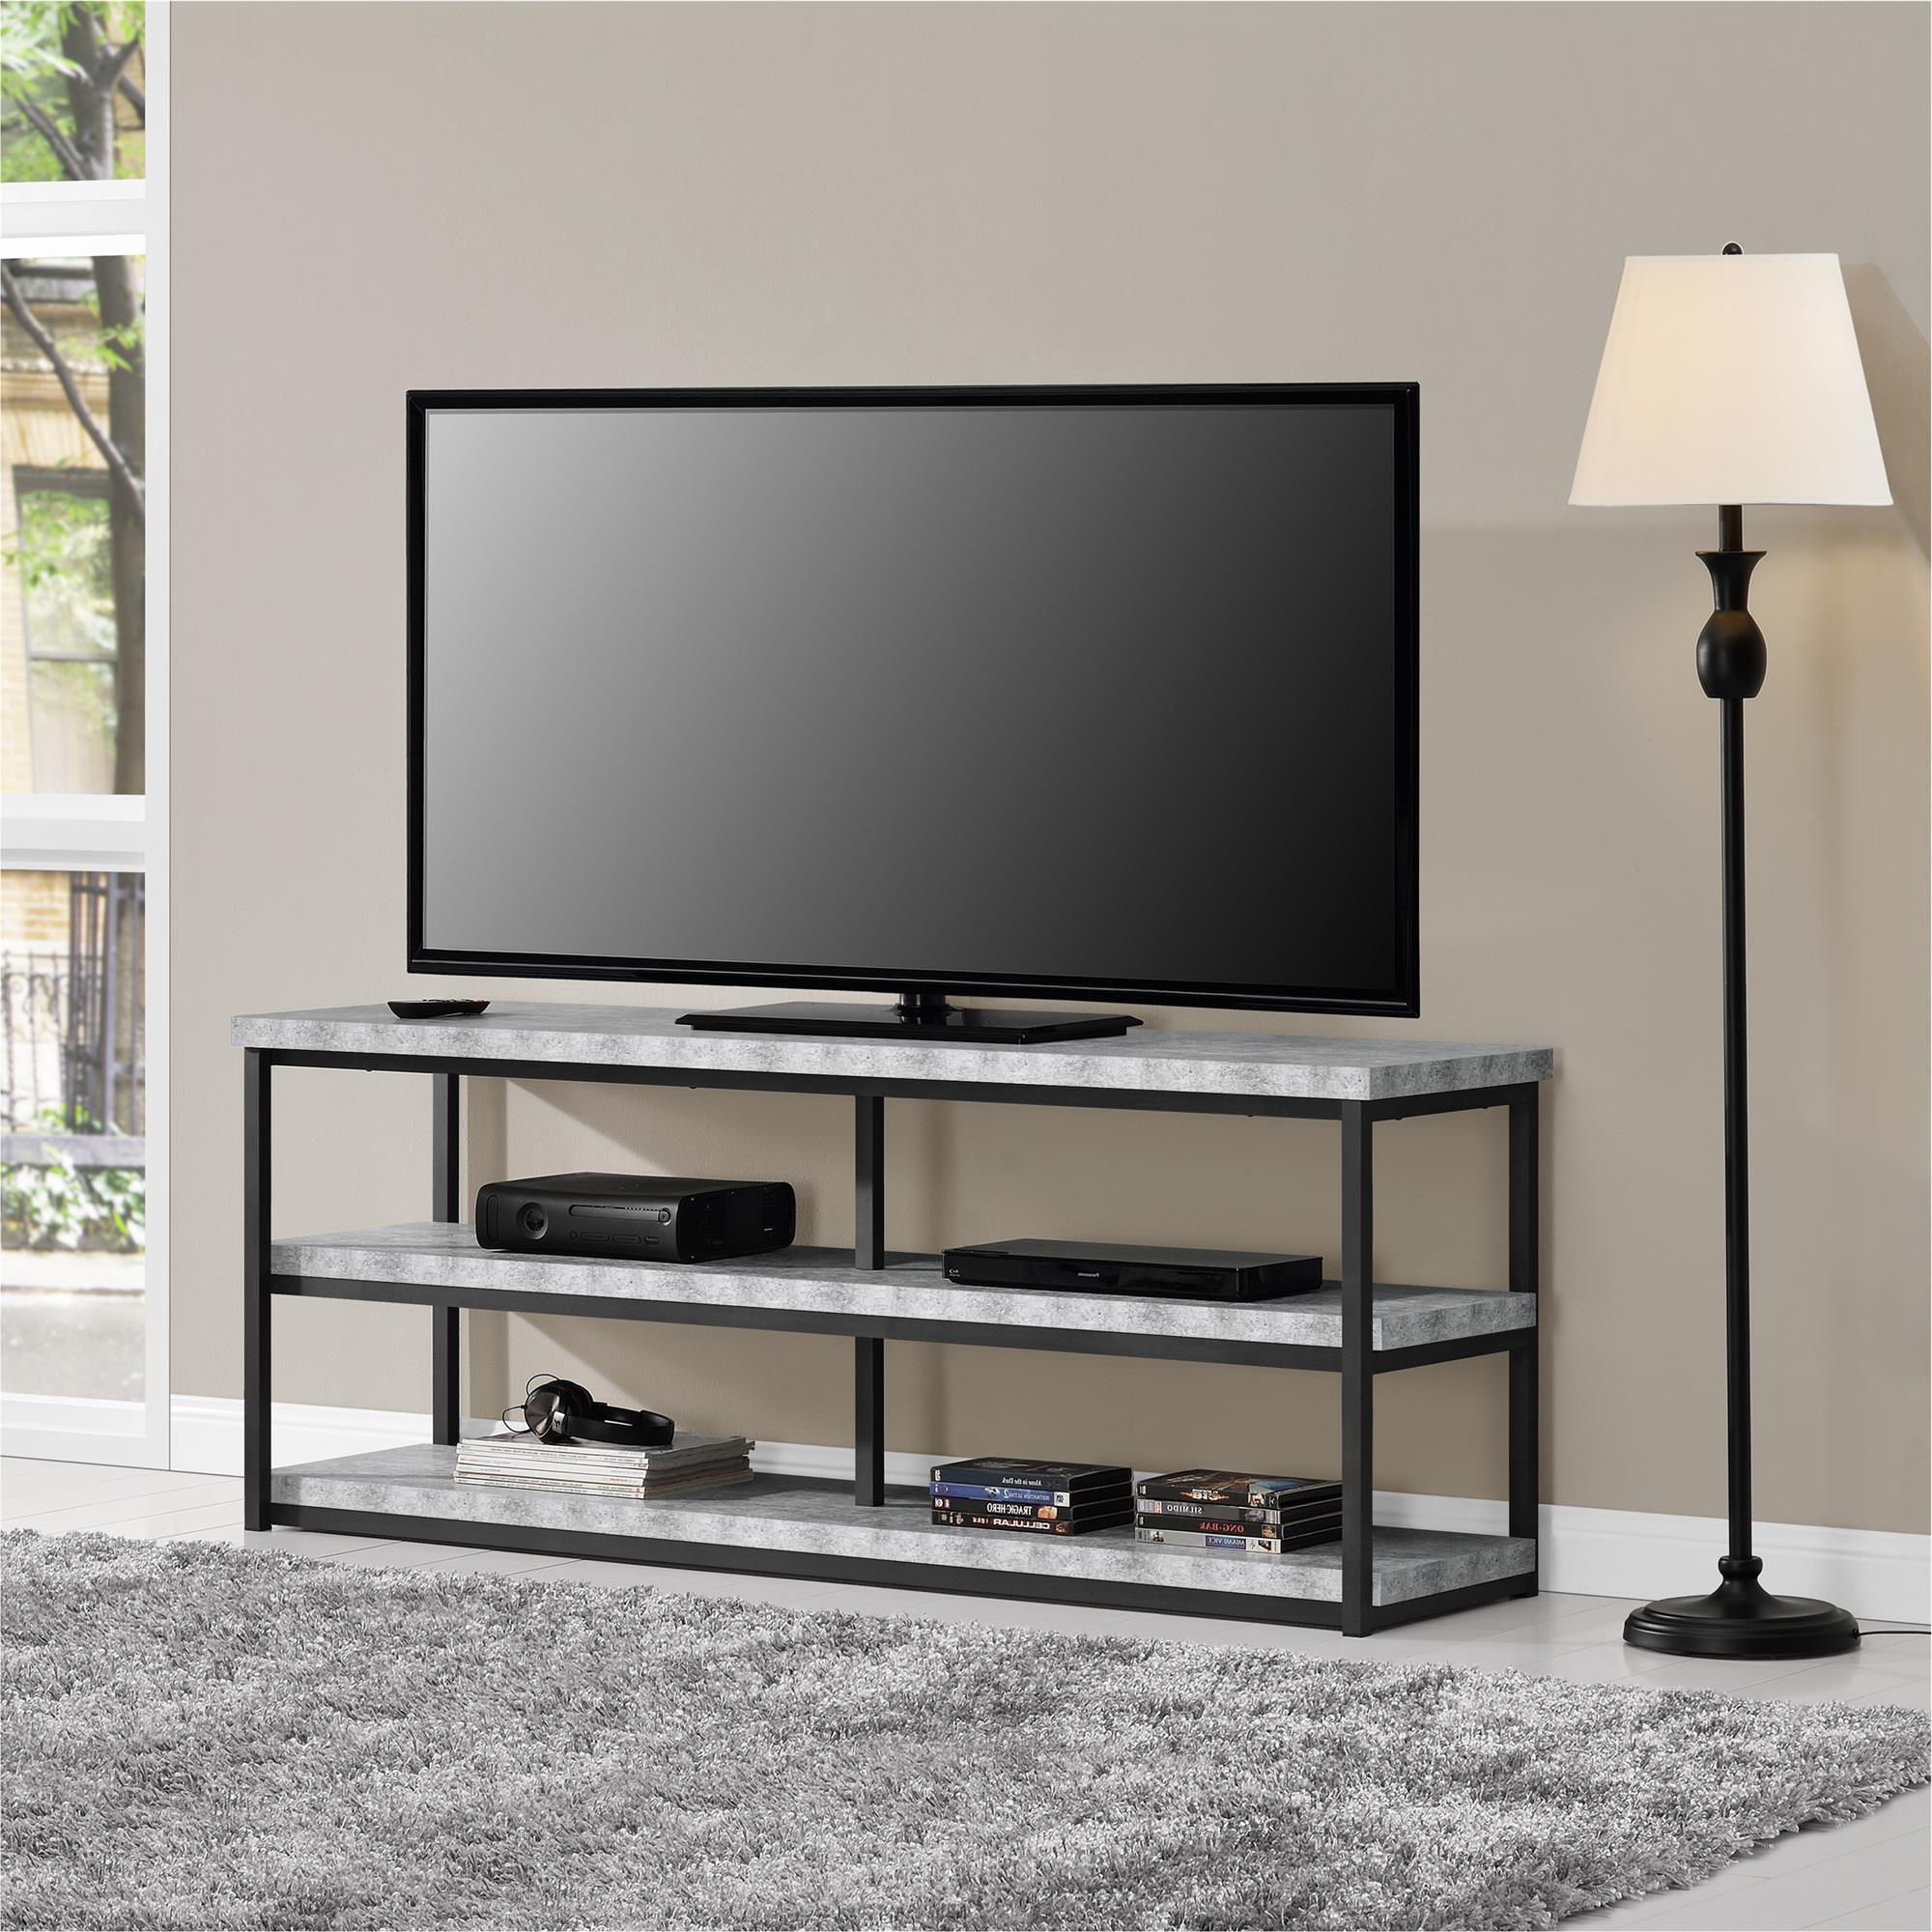 """Well Known Ameriwood Home Ashlar Tv Stand For Tvs Up To 65"""", Multiple Pertaining To Mainstays Tv Stands For Tvs With Multiple Colors (View 1 of 10)"""